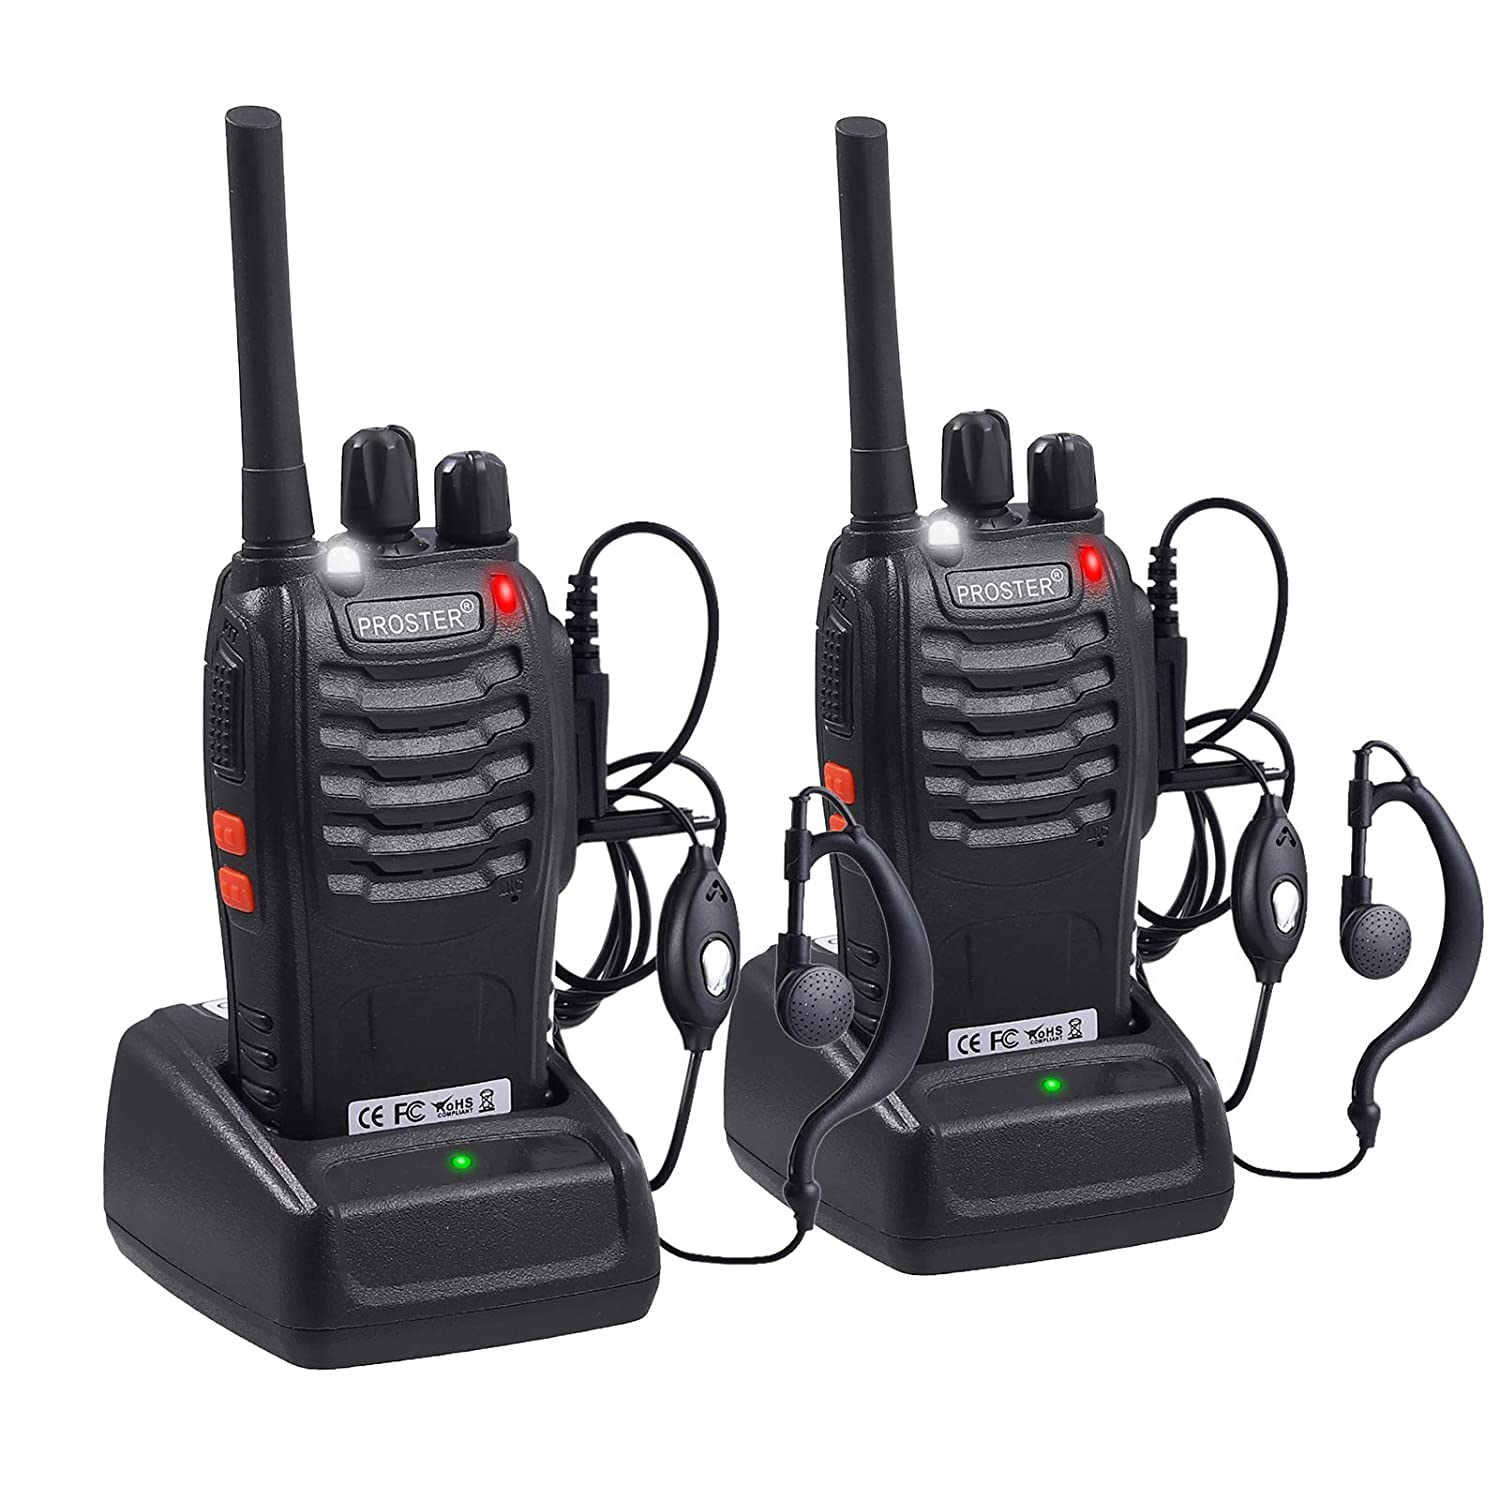 Proster Walkie Talkies 16 Channels Rechargeable Walky Talky with USB Charger Earpieces Walkie Talkies with Voice Prompt 1 Pair